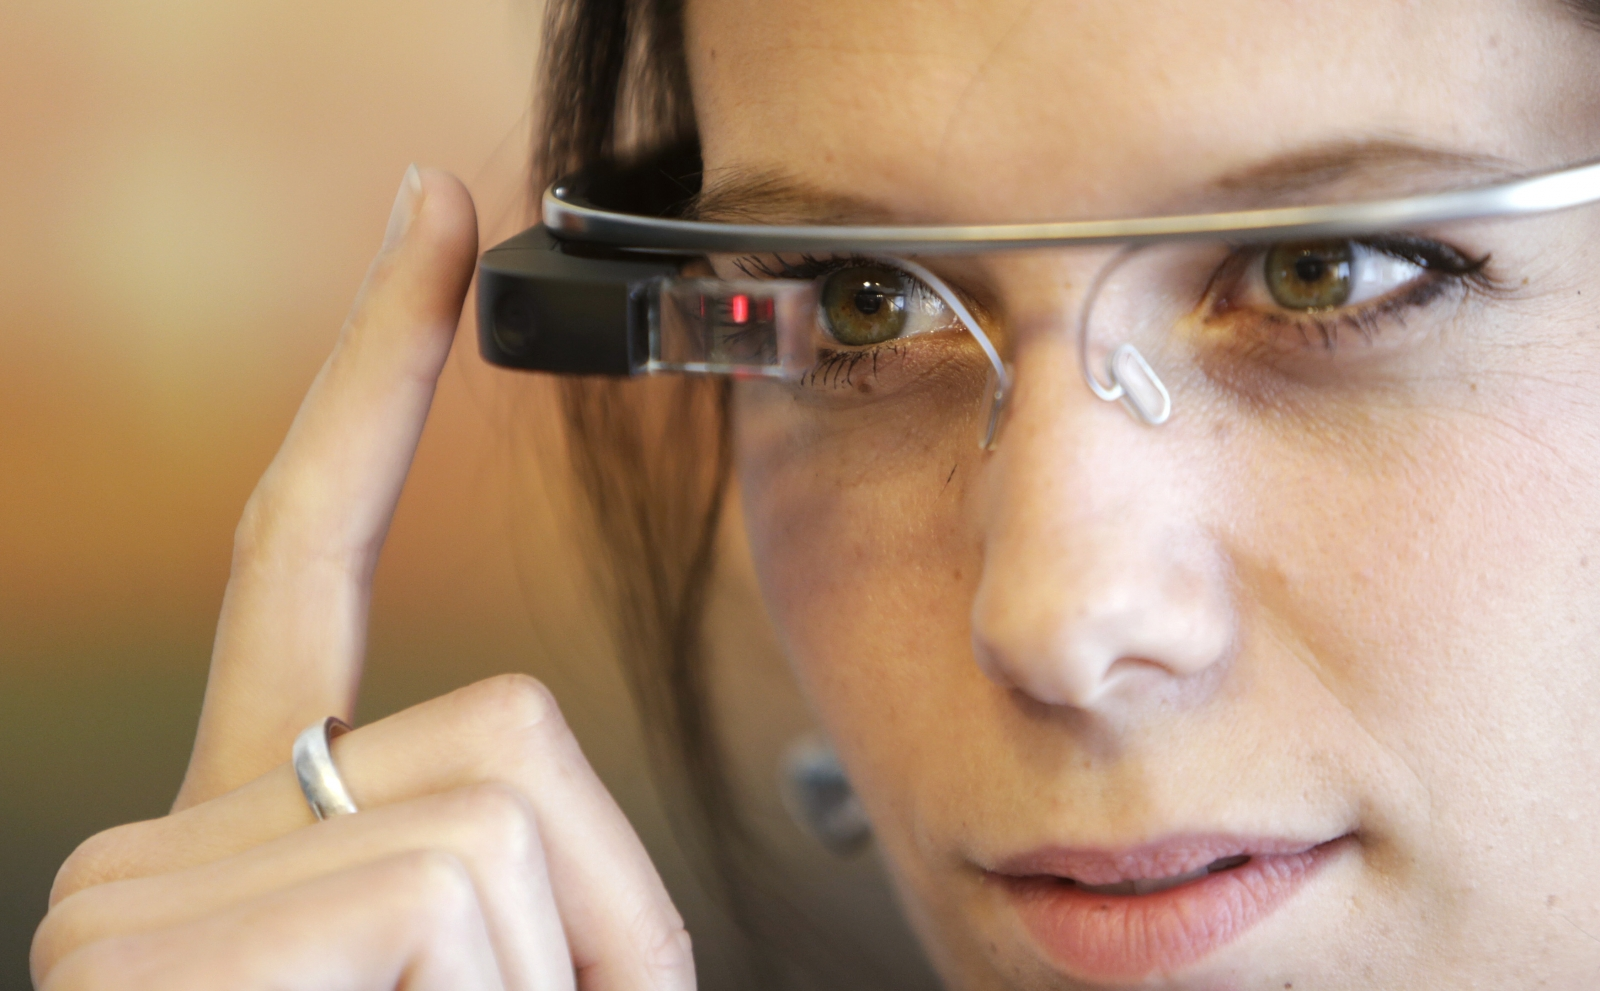 Perhaps Google Glass isn't such a good idea for your eyes as it can cause blind spots